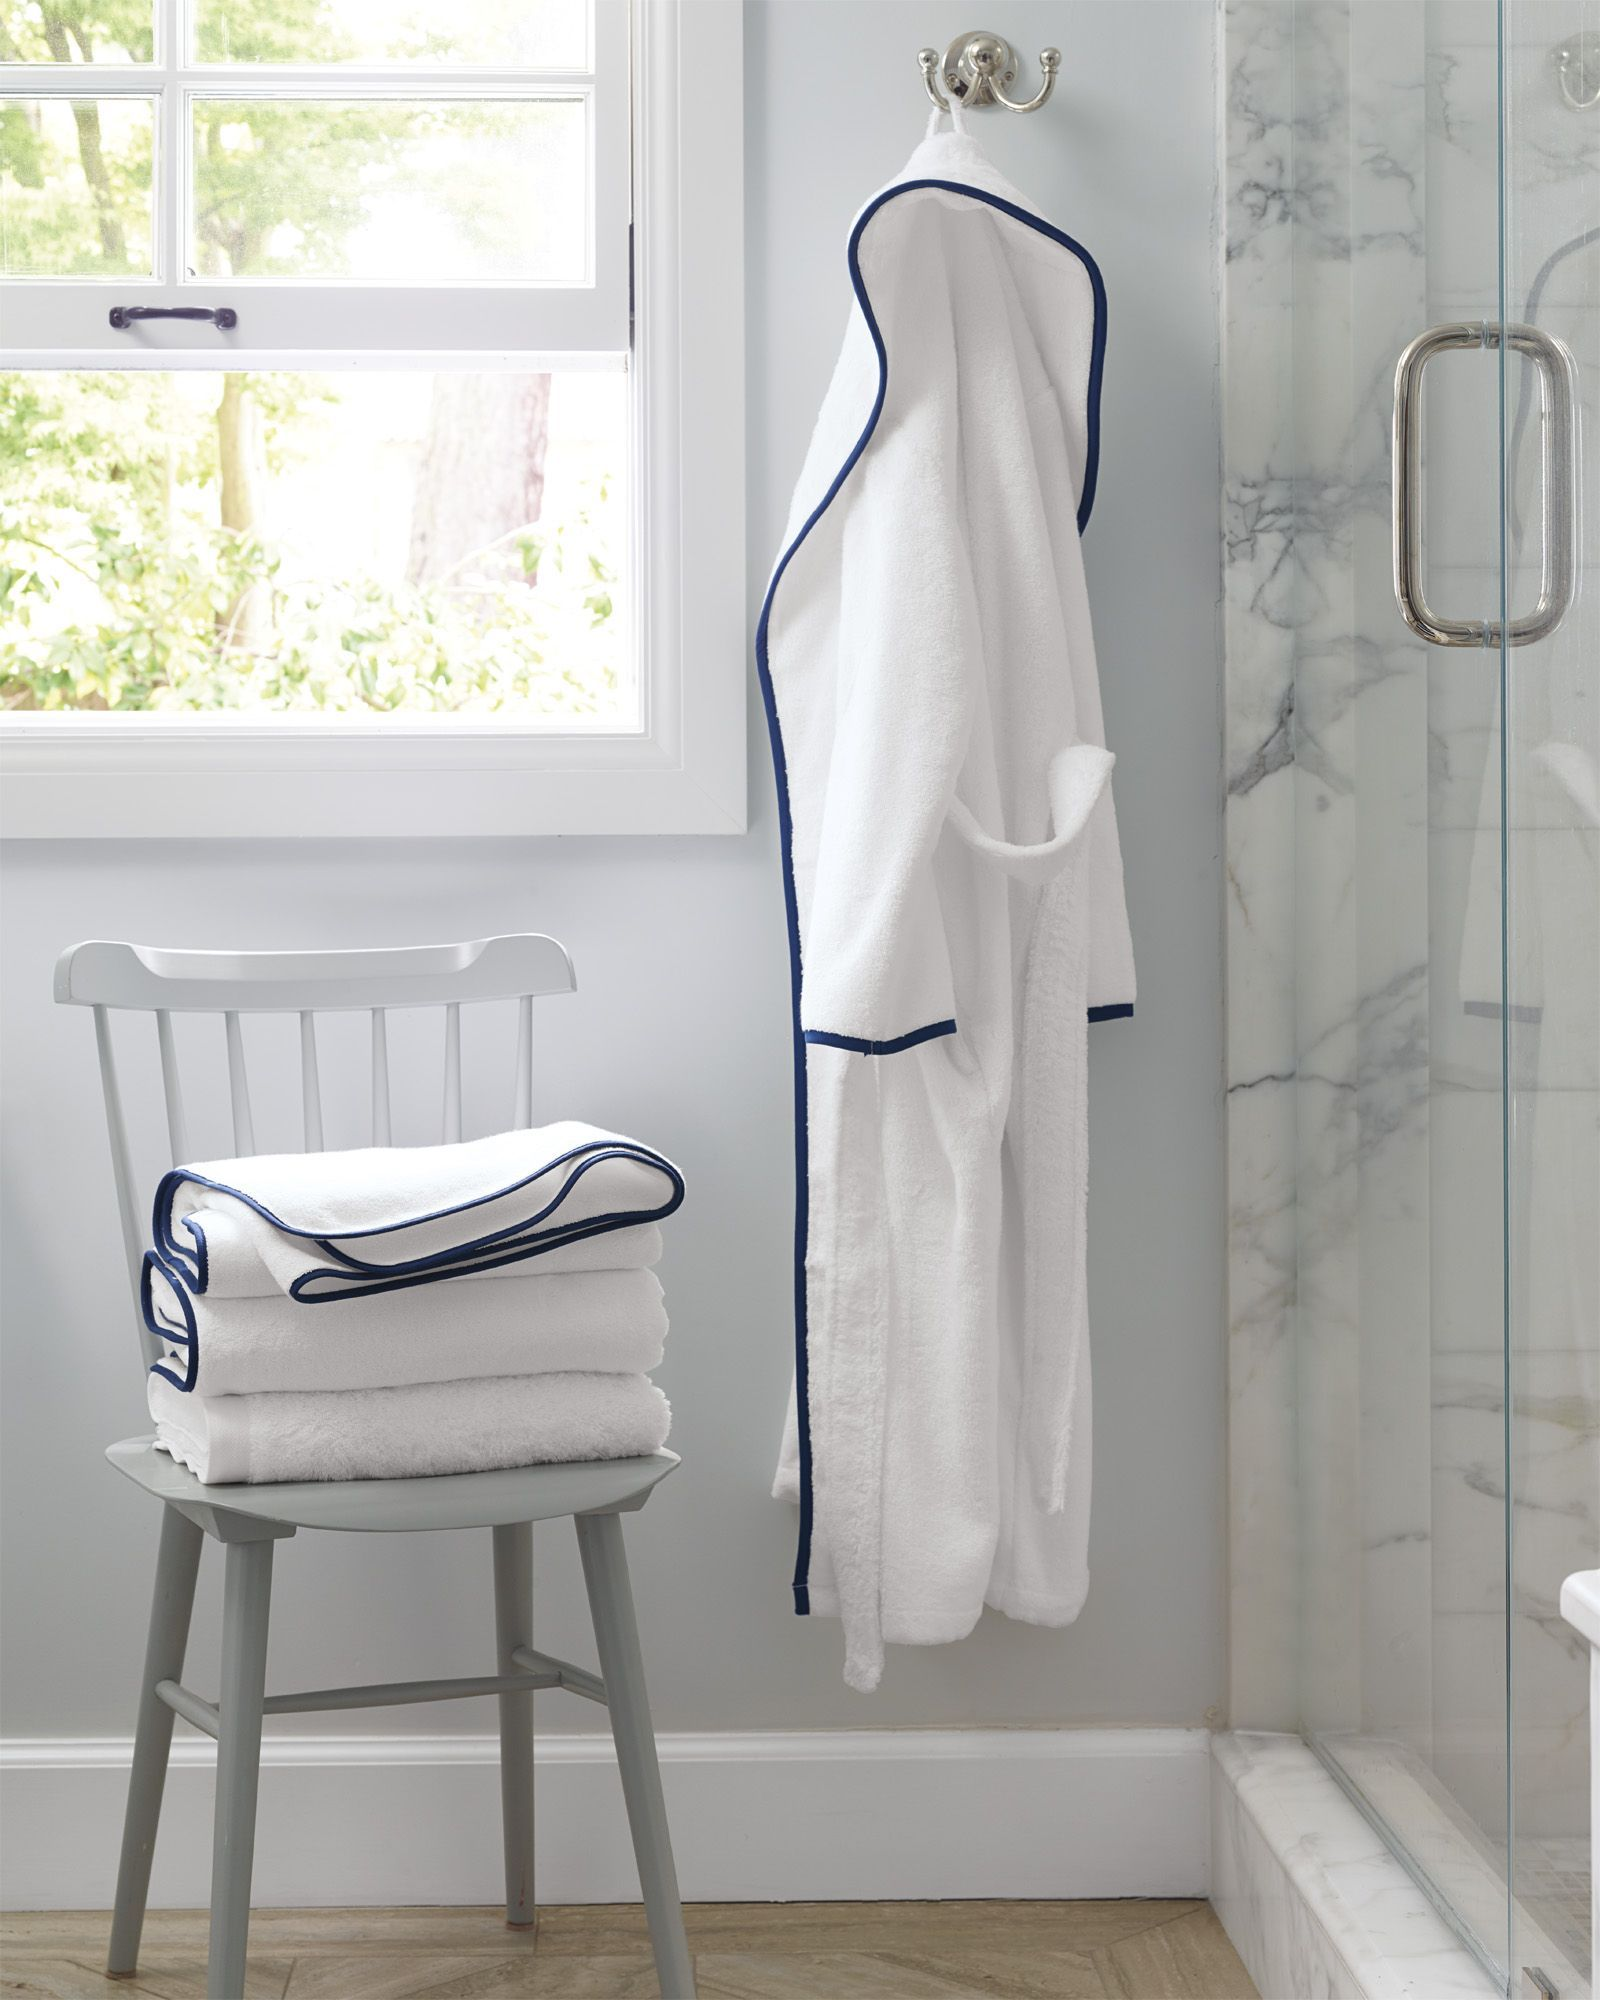 2f00012599 Laguna Bath Robe - apparel - bathroom essentials - bathroom inspiration via  Serena   Lily  bathroomdecor2019